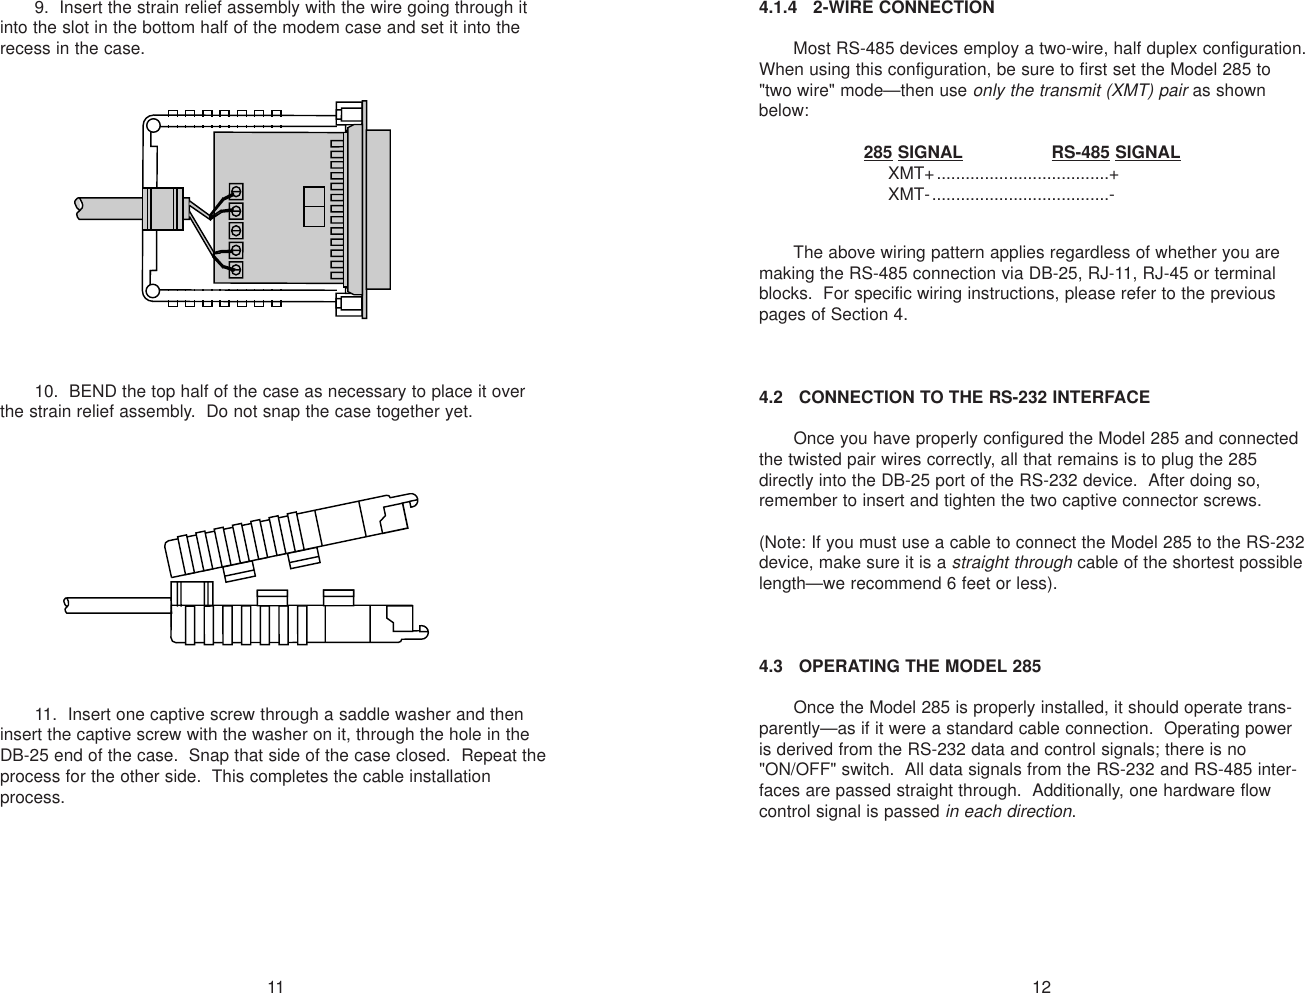 Rs 485 2 Wire Wiring Diagram Cyberresearch 285 User Manual To The E0216d27 E06c 47f8 Abea Page 7 Of 9